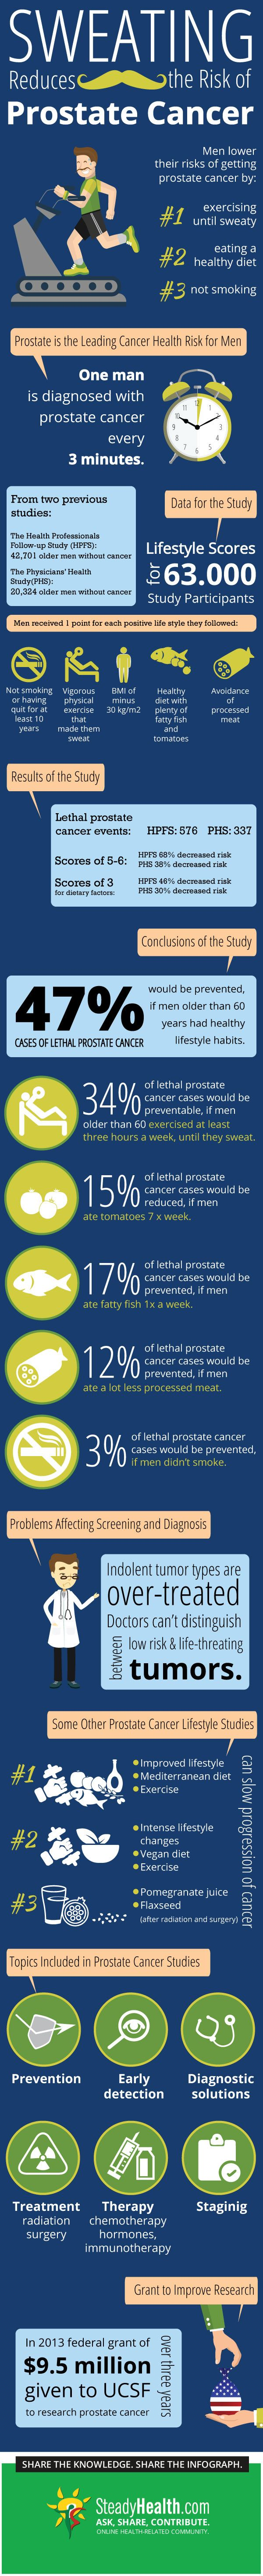 Studies of the lifestyles of 63,000 men show that vigorous exercise that induces sweating, together with a healthy diet, normal body weight and not smoking, may lower the risks associated with lethal prostate cancer by as much as 68 percent.